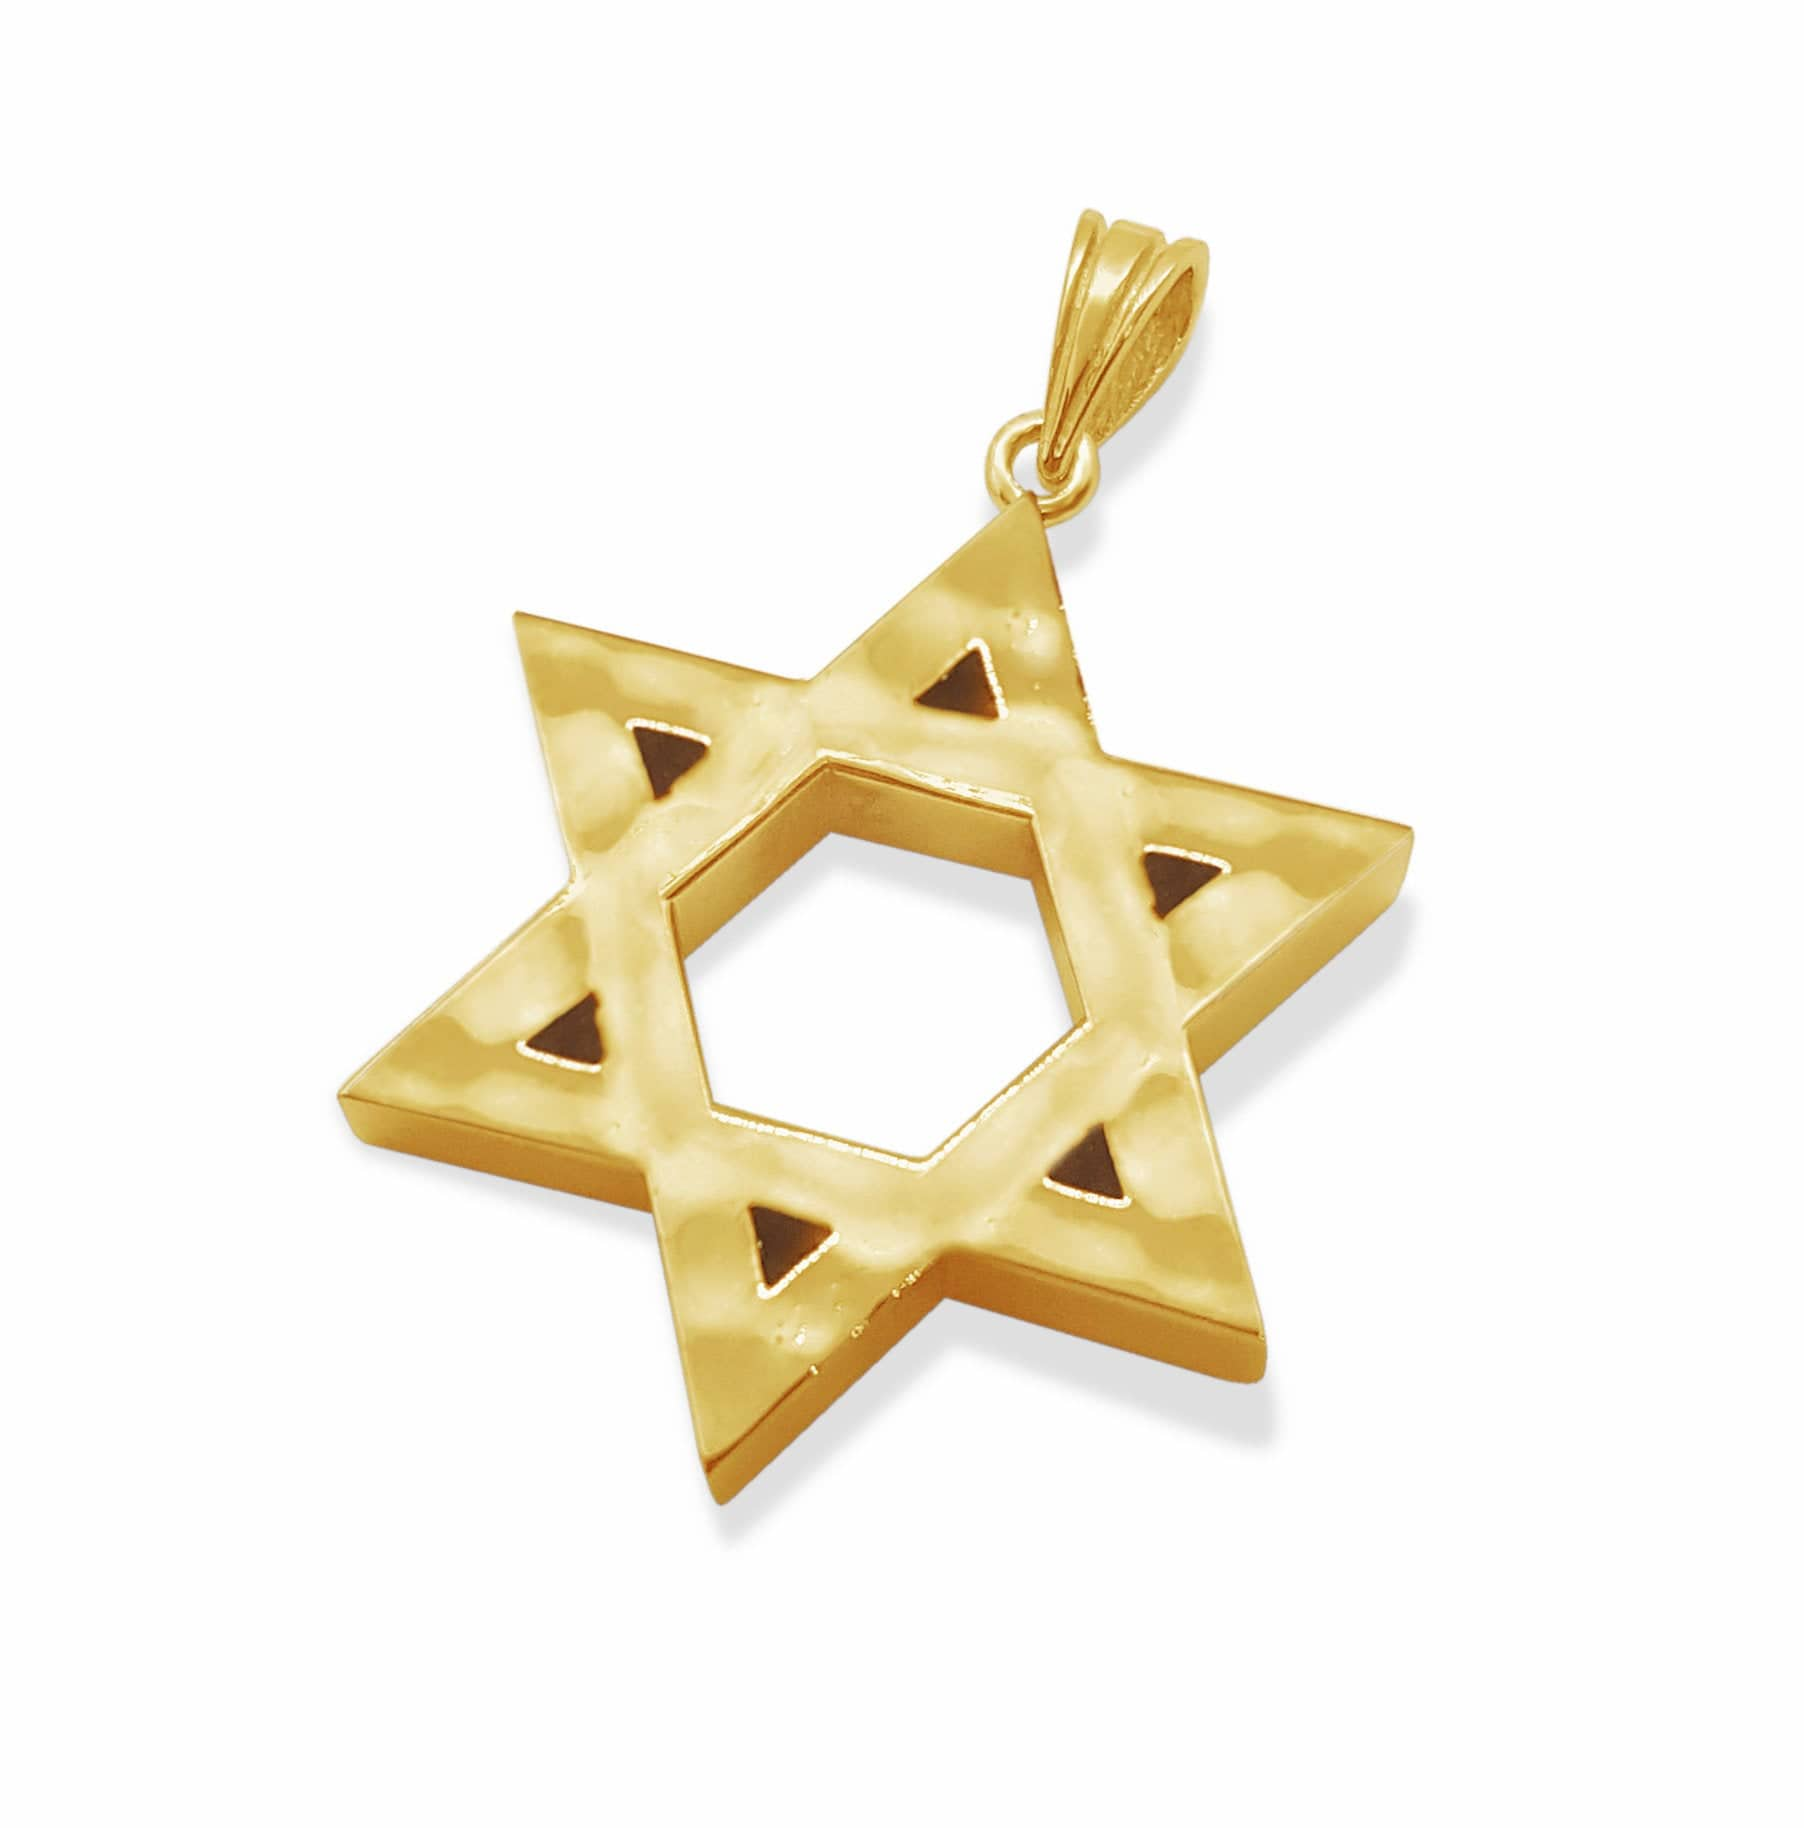 3D Hammered 14k White Gold Bold Star of David Pendant Necklace ,Gold Magen David Pendant Necklace